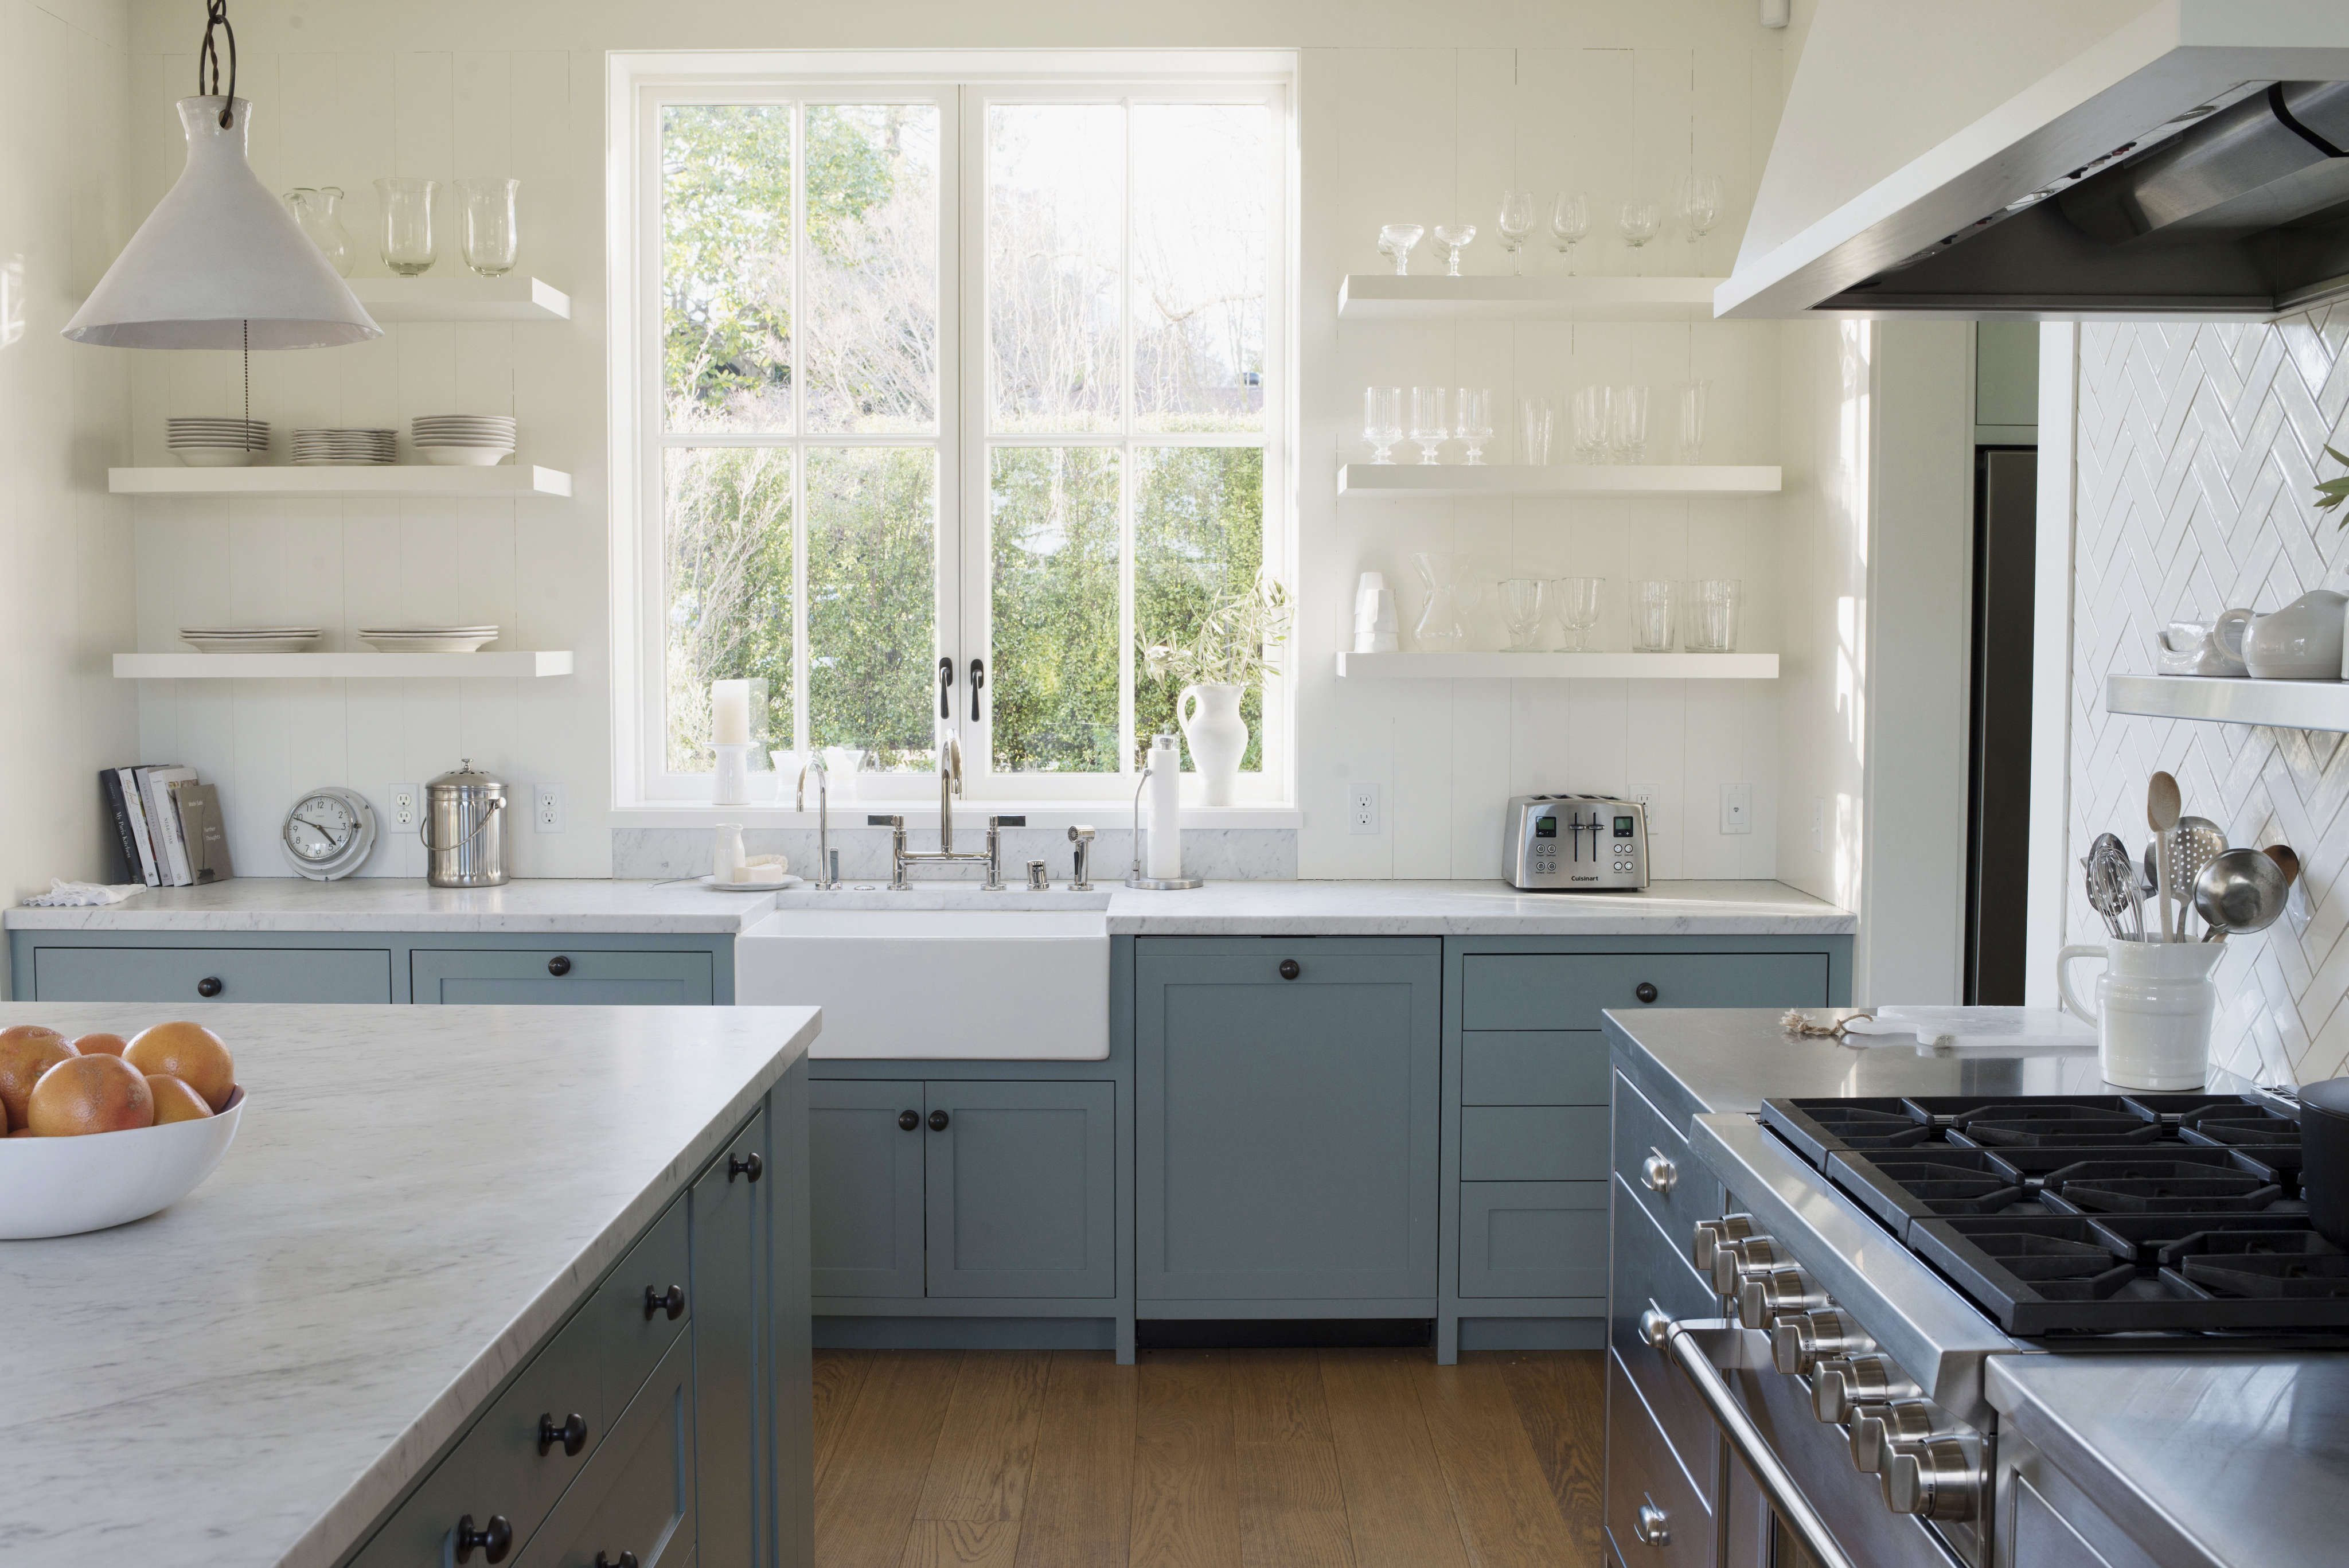 Exceptionnel Kitchen Of The Week: A New Build Kitchen In Mill Valley, CA, The Six Month  Check Up   Remodelista